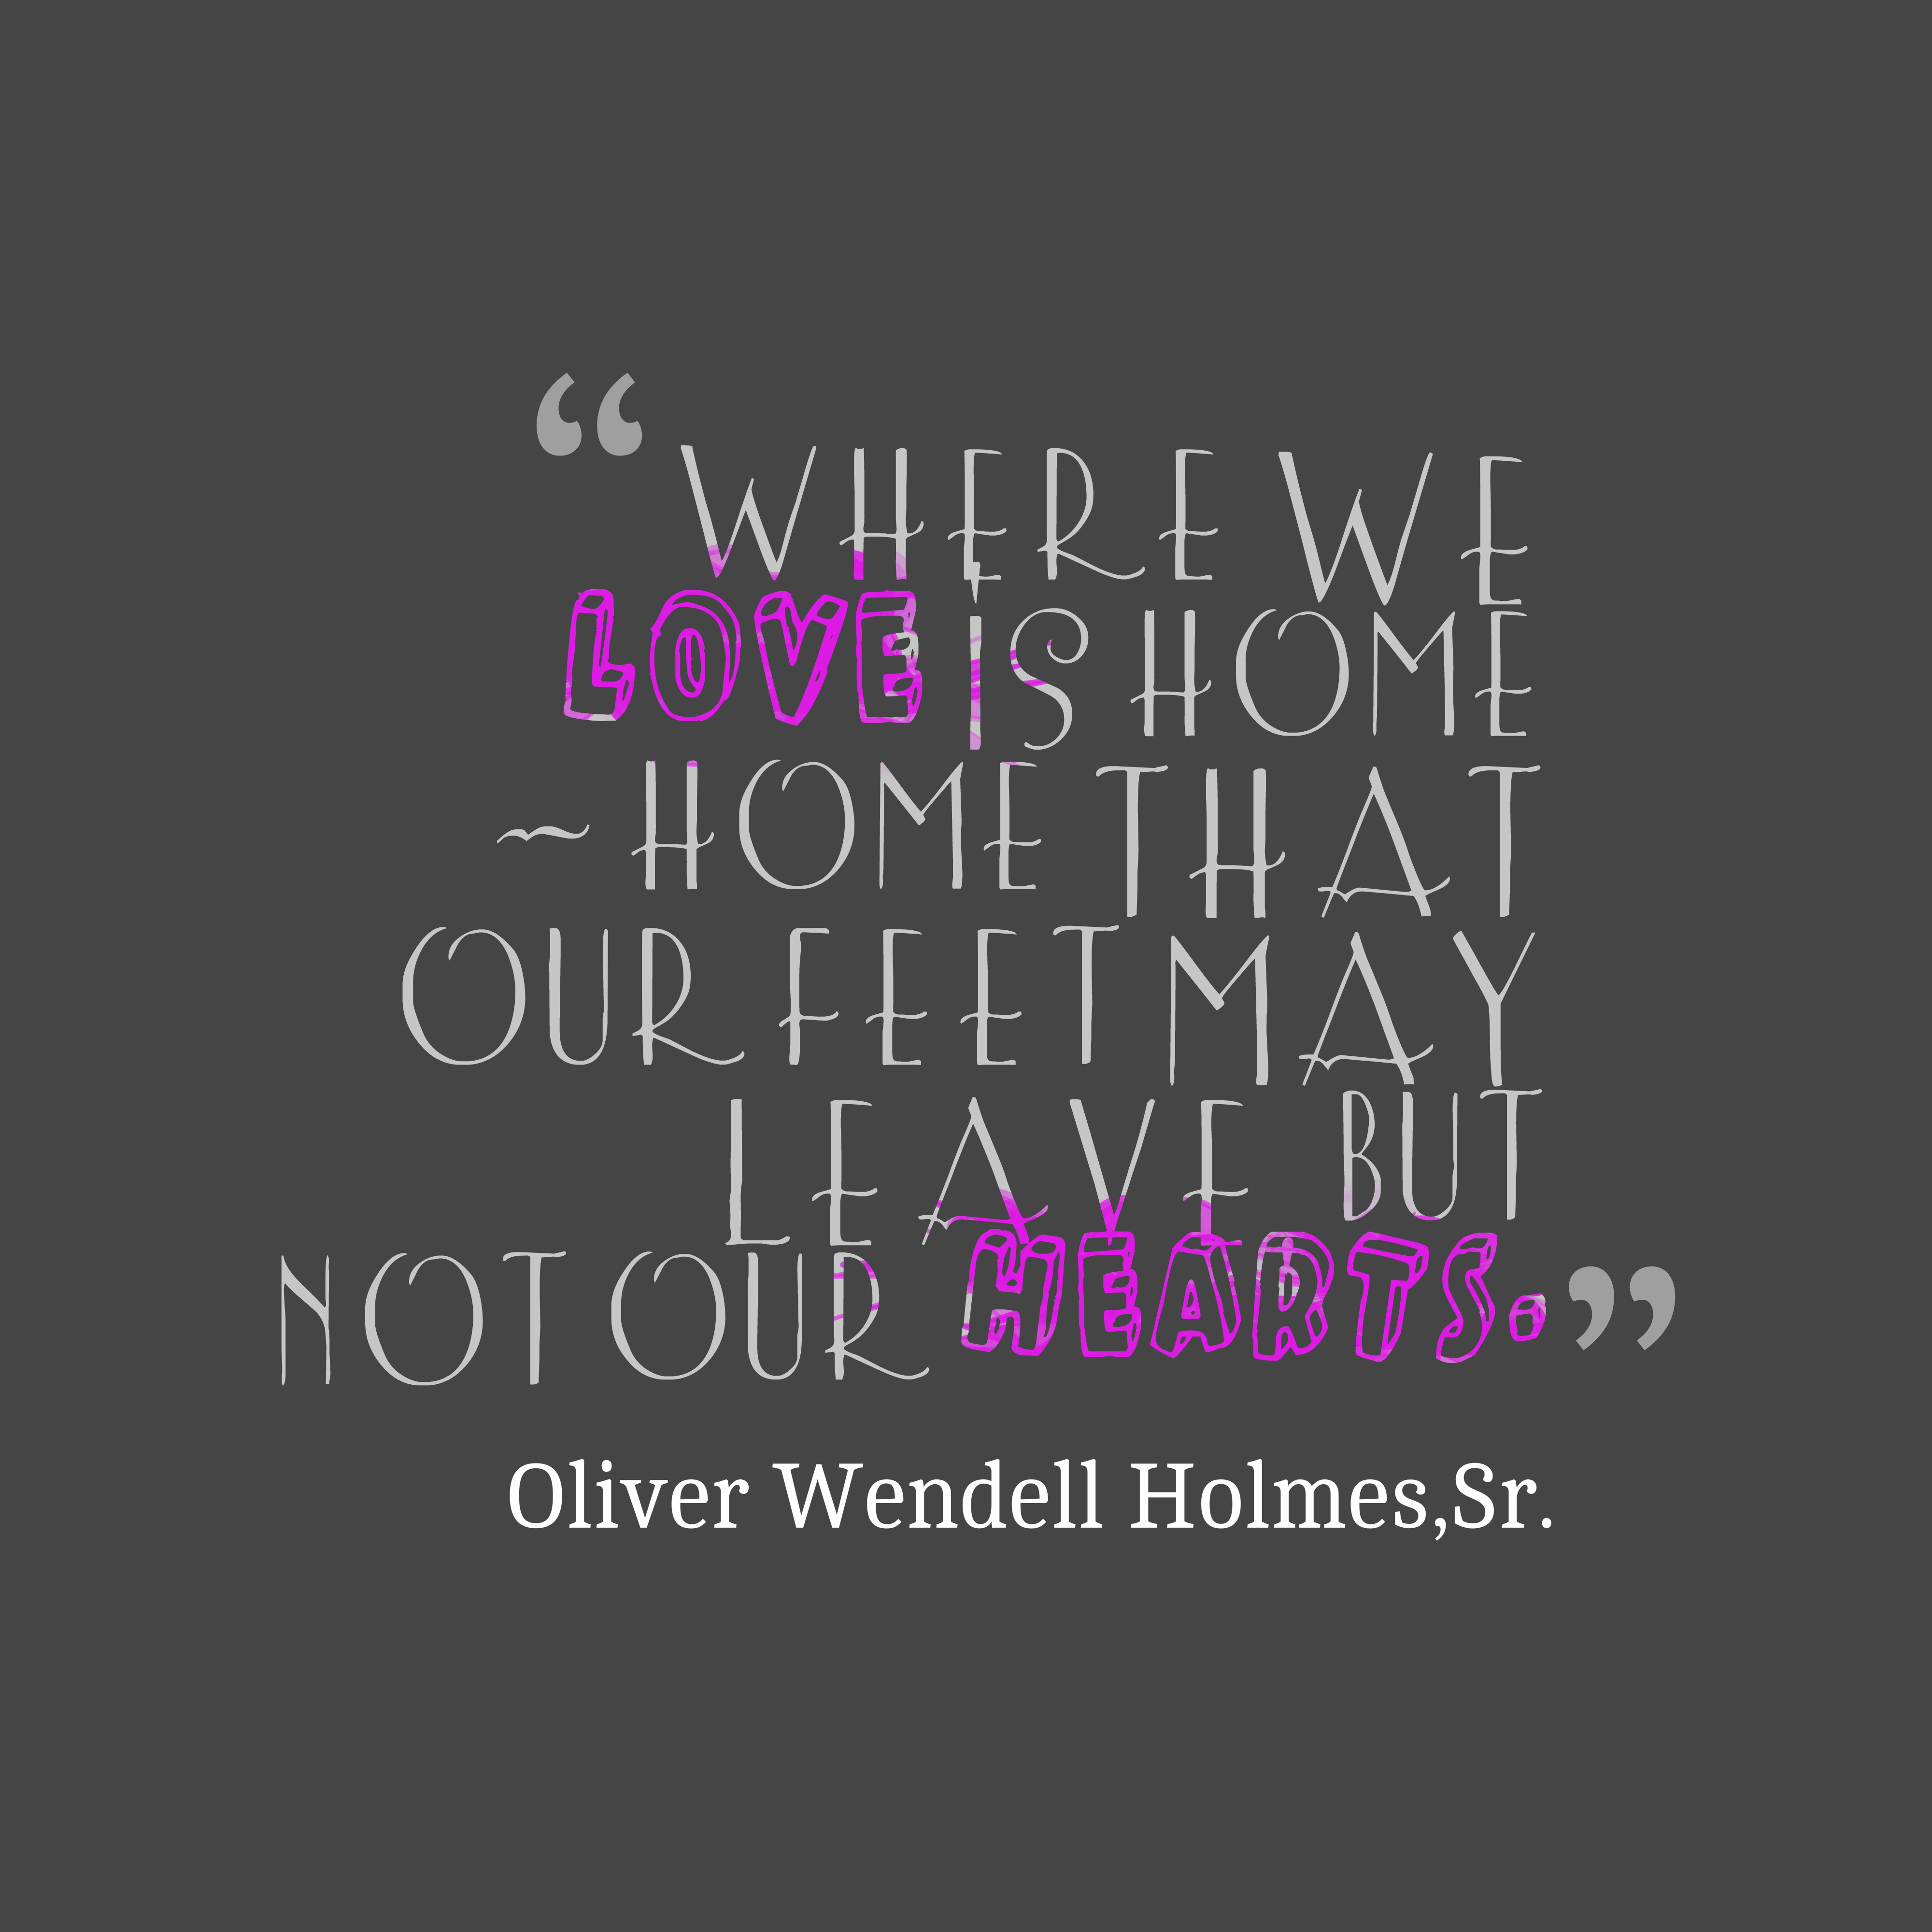 Picture oliver wendell holmes sr quote about home for Lovers home